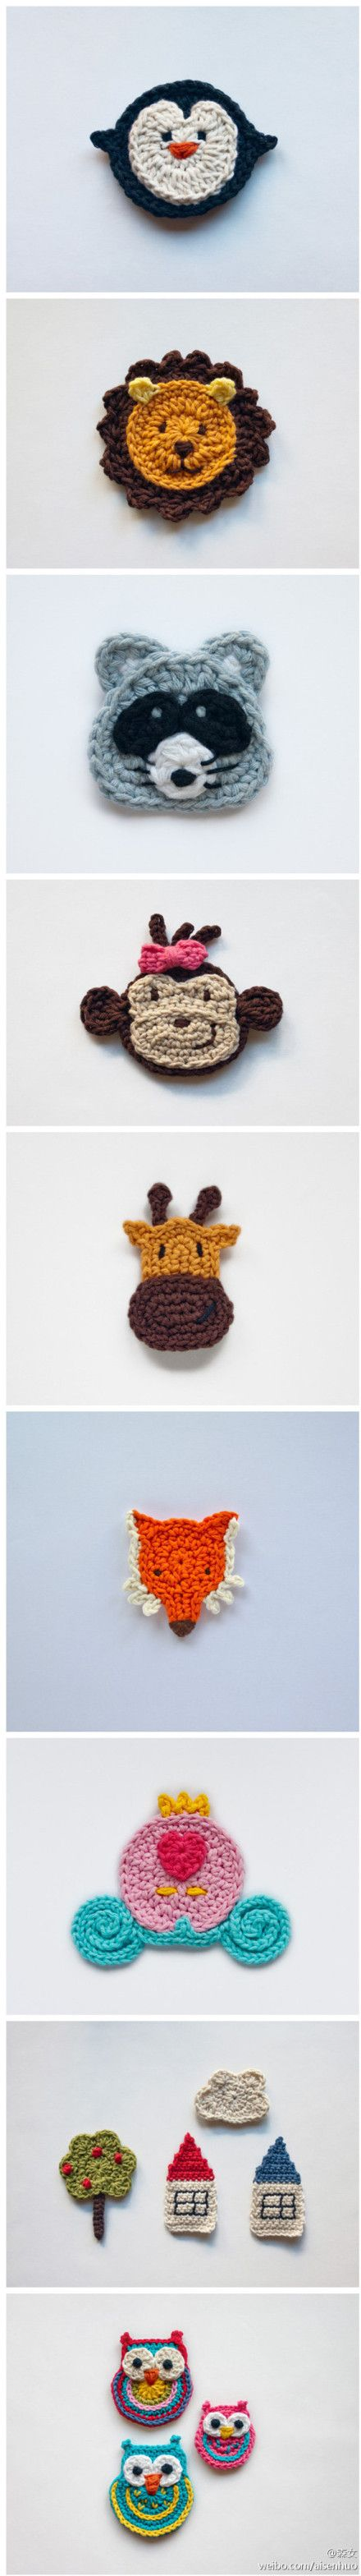 Crochet animals, can be used to embelish hats etc